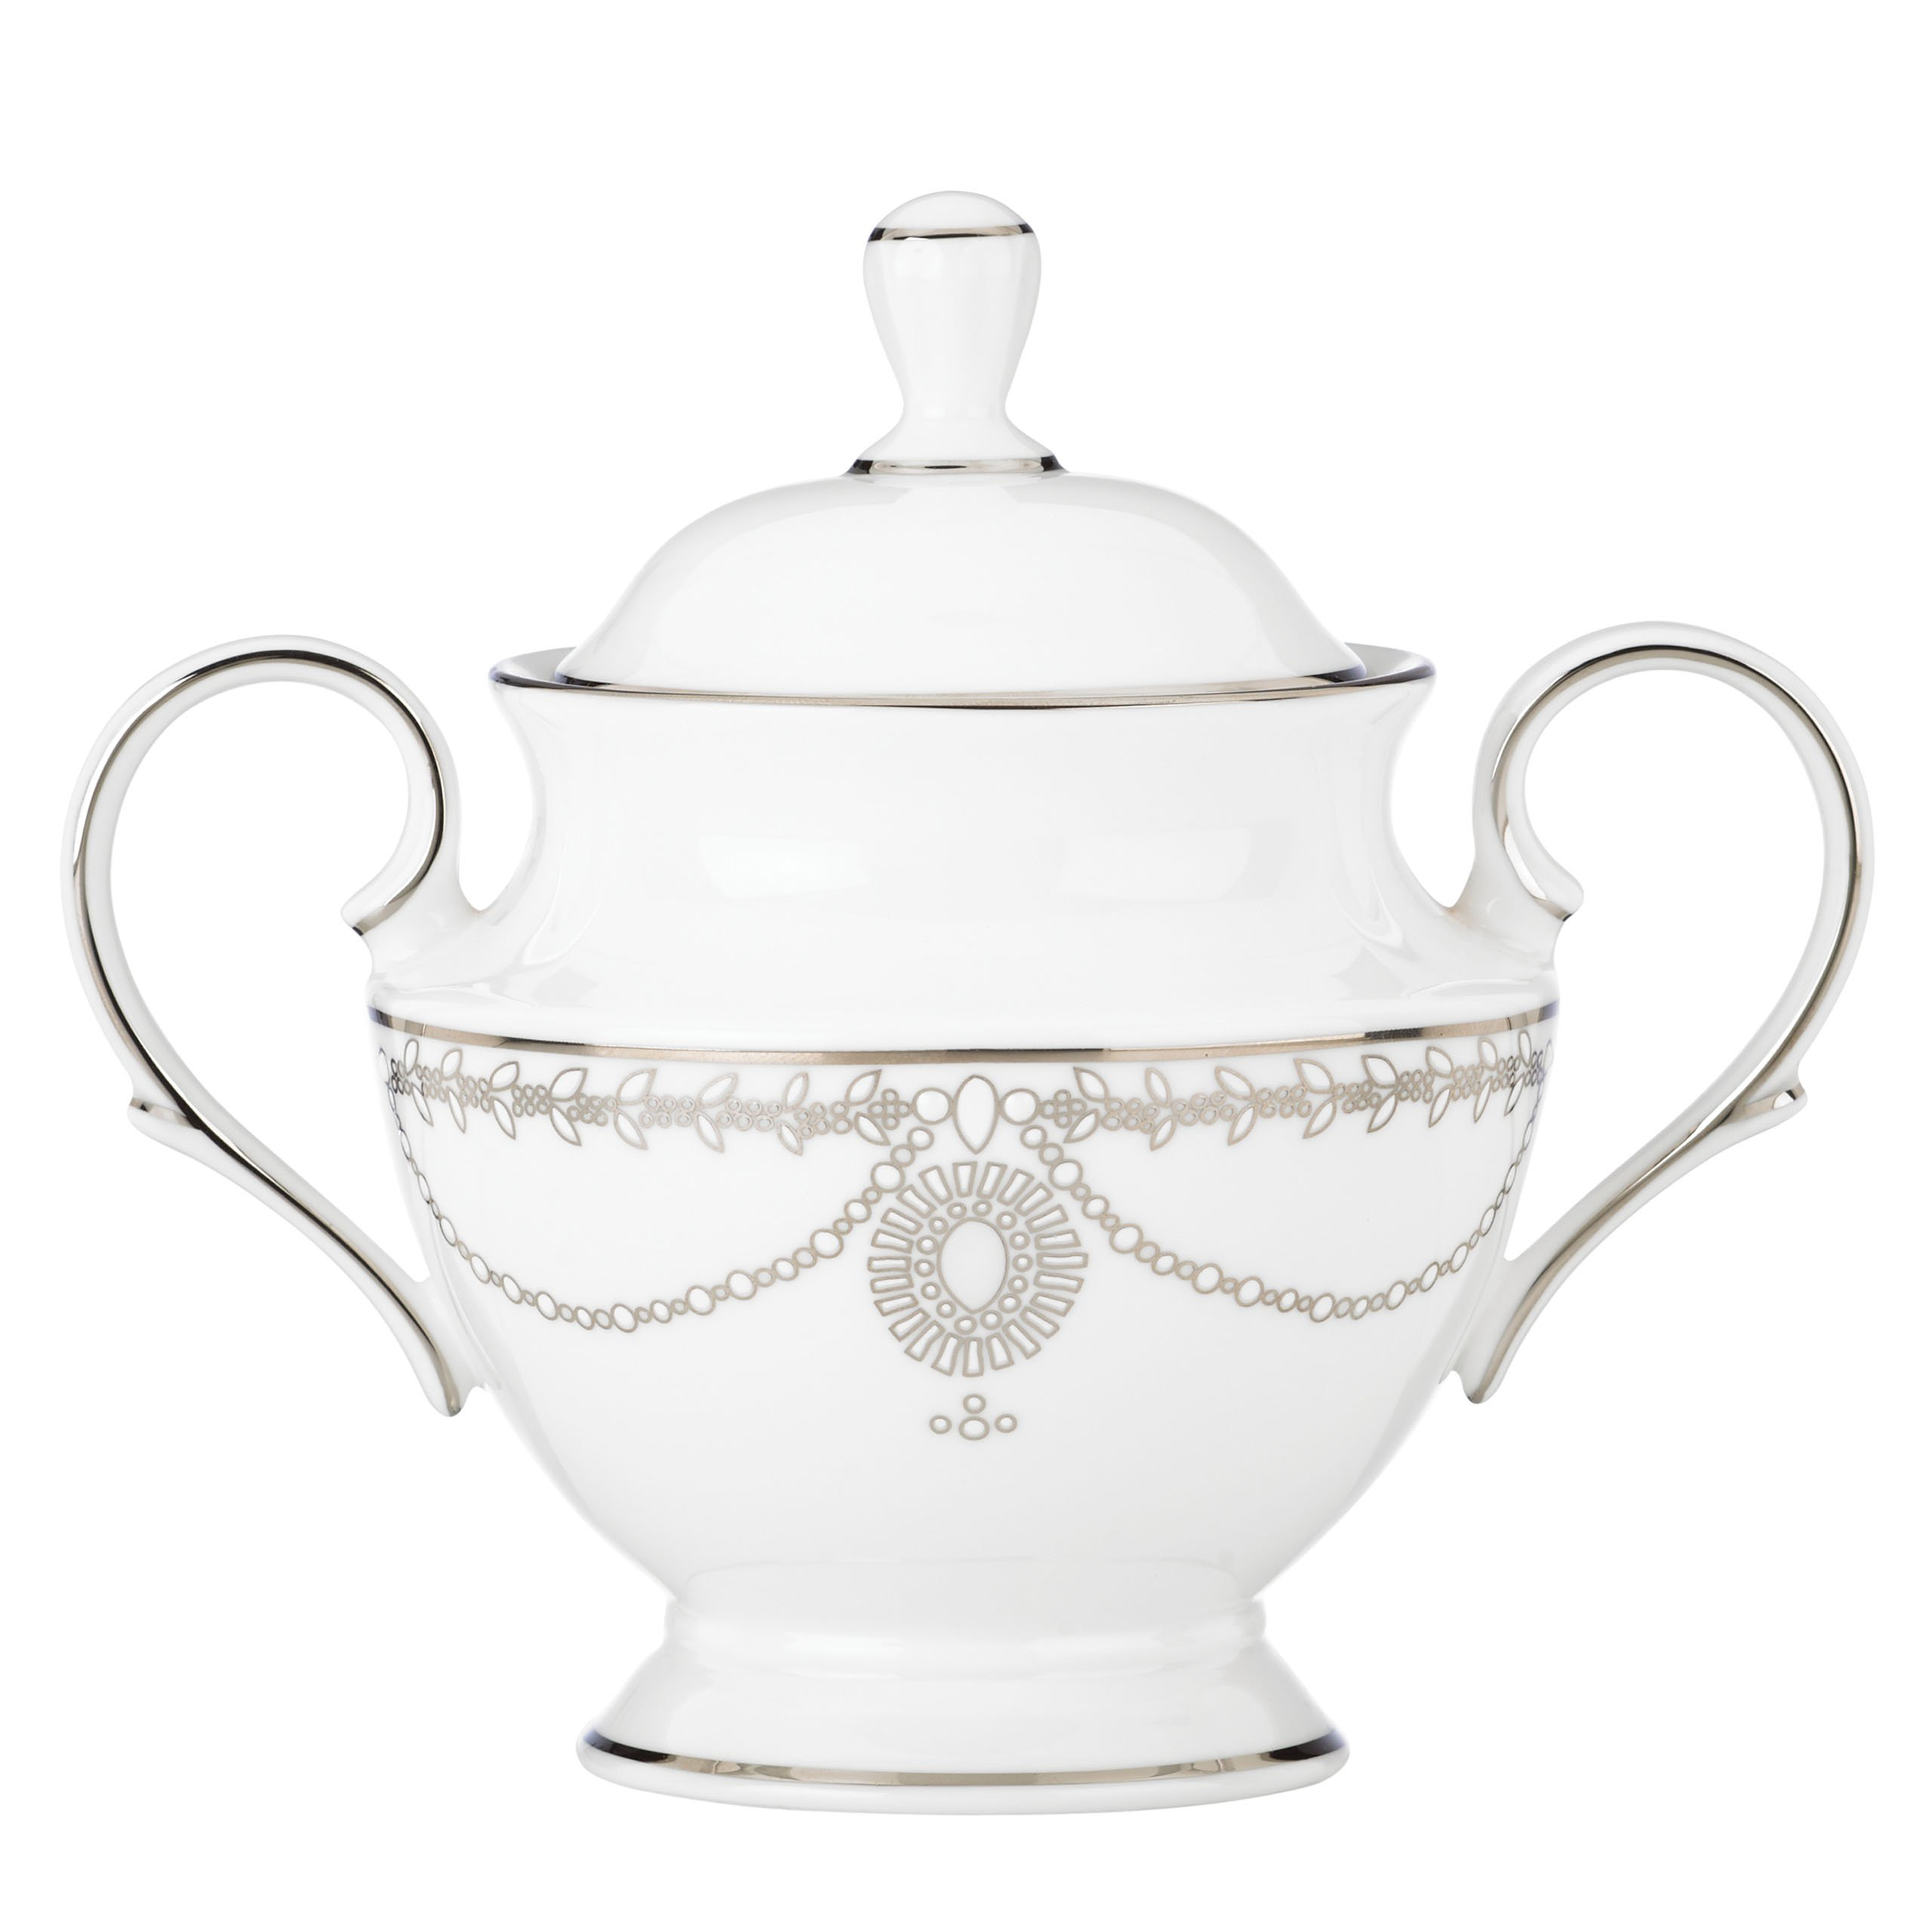 Lenox Marchesa Empire Sugar Bowl, Pearl